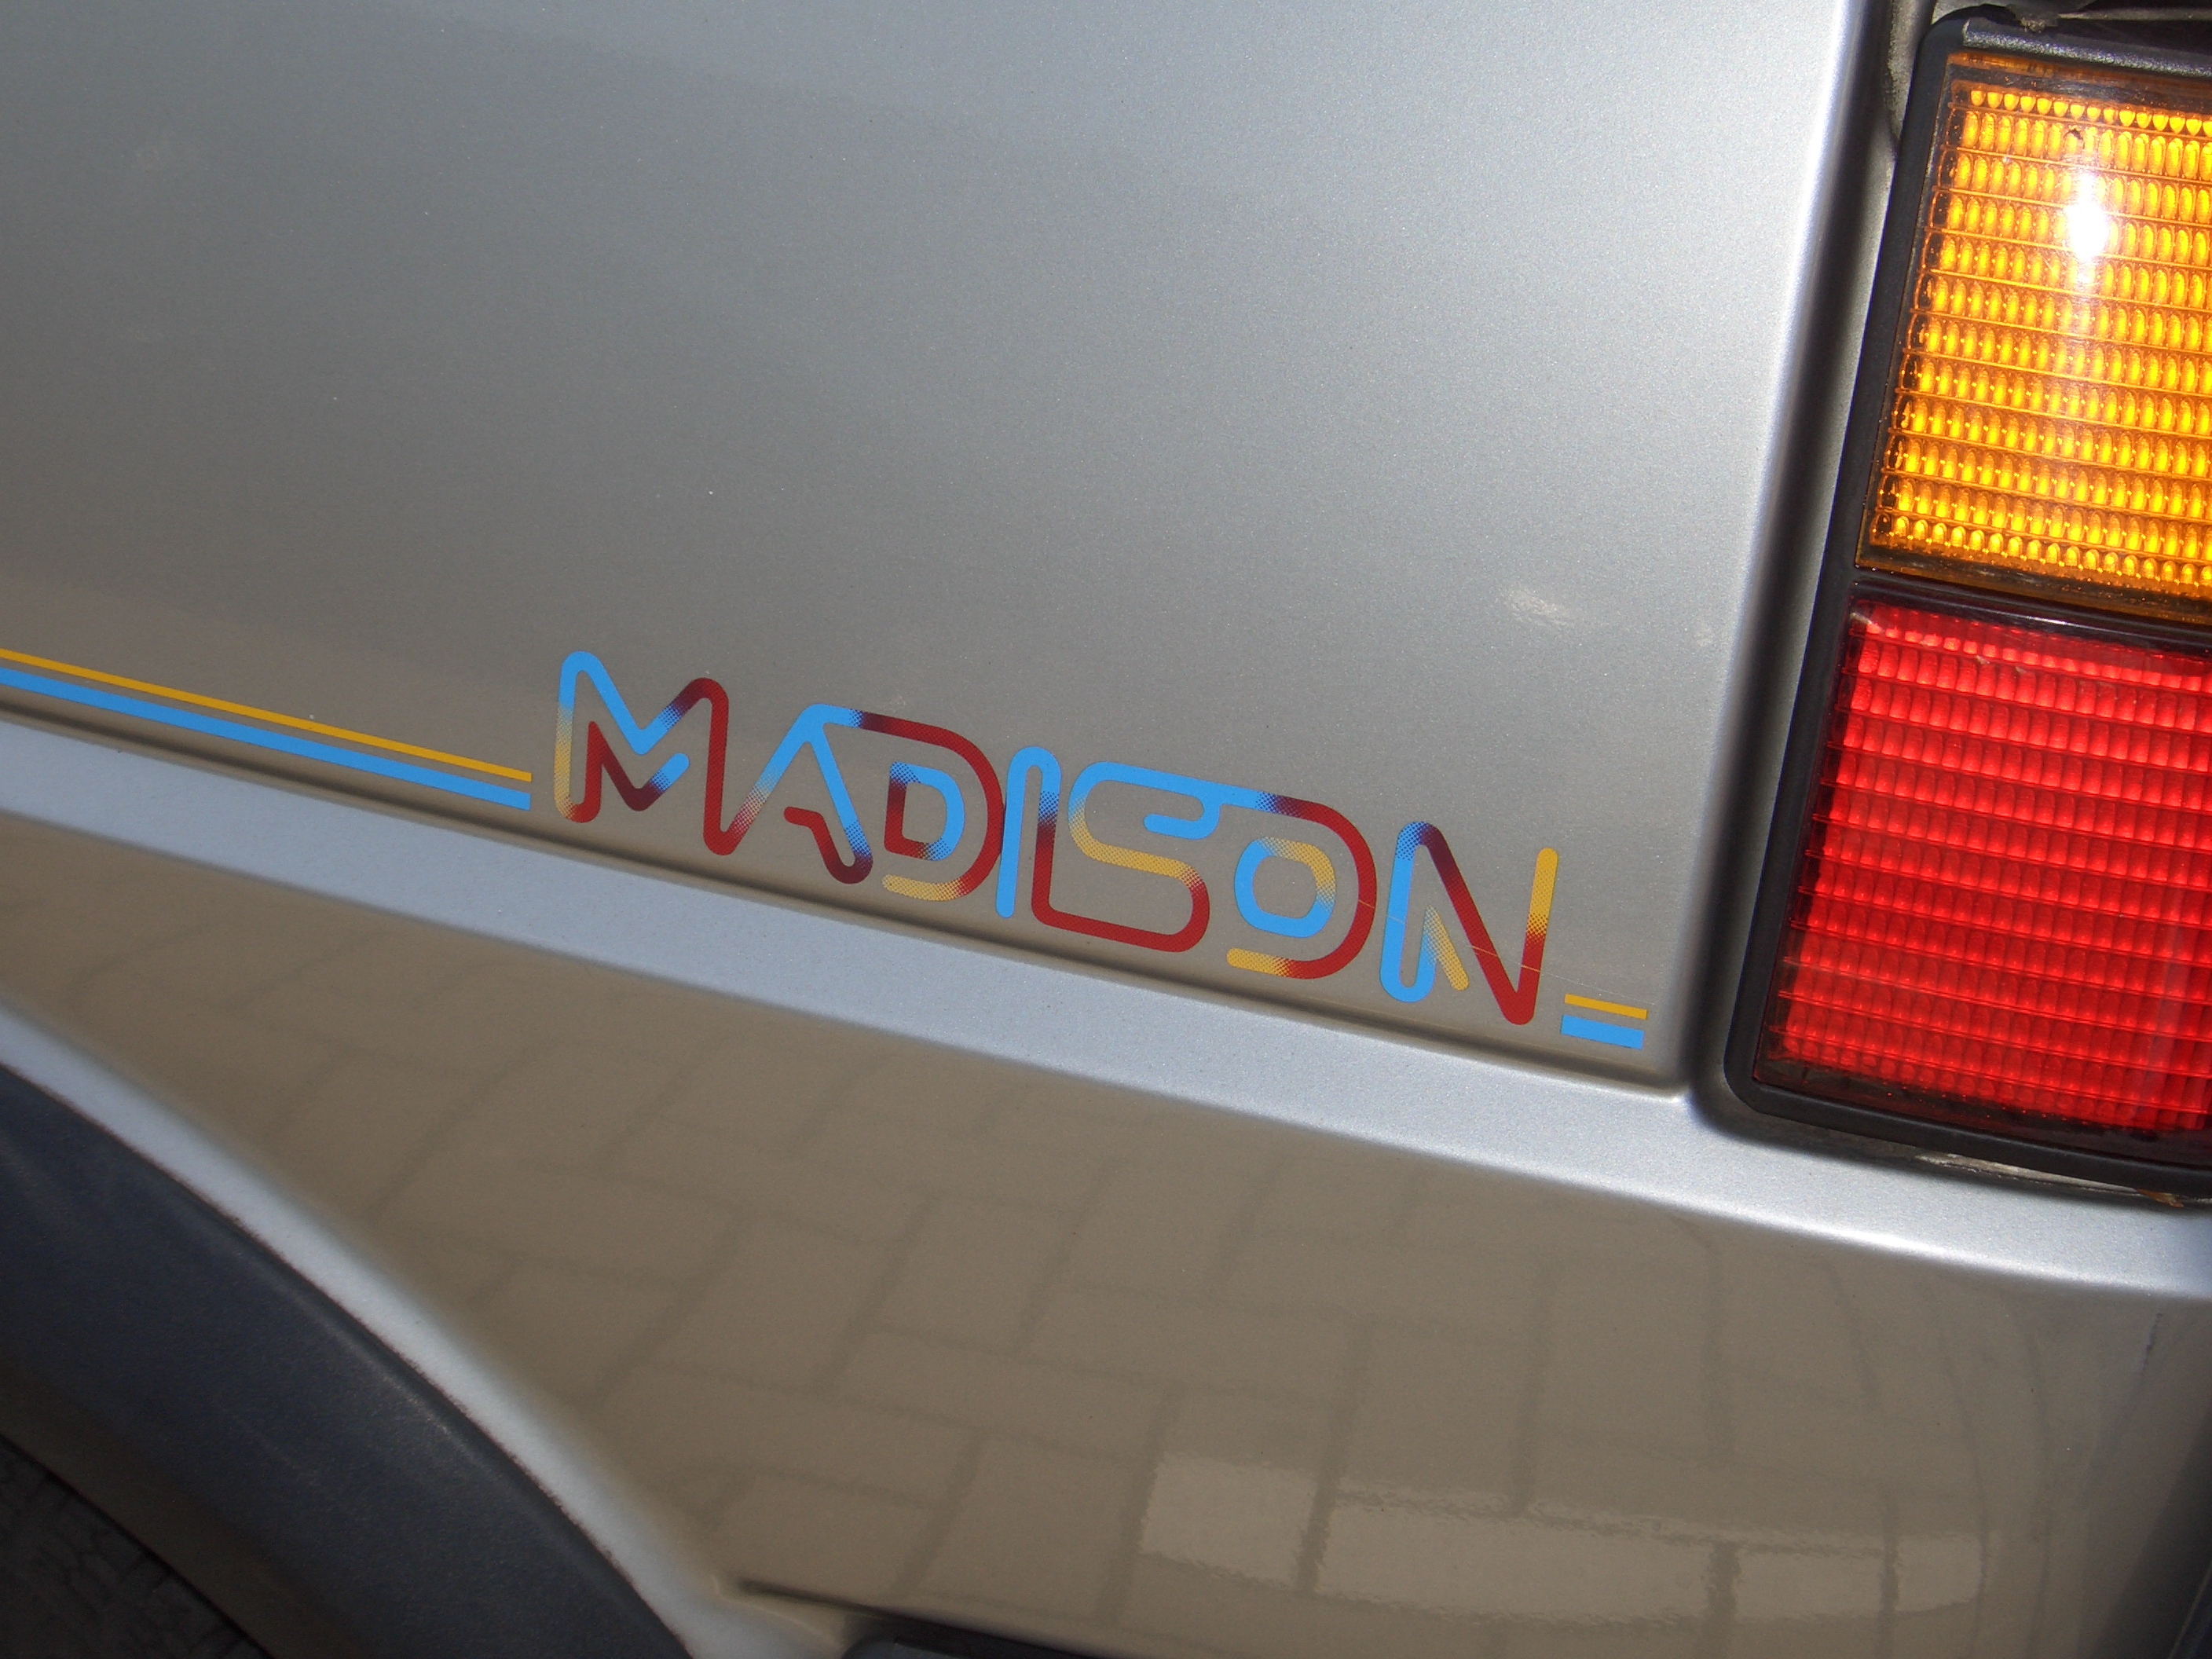 File:VW Golf Gen2 19E 1983-1992 special edition MADISON 1990 ...